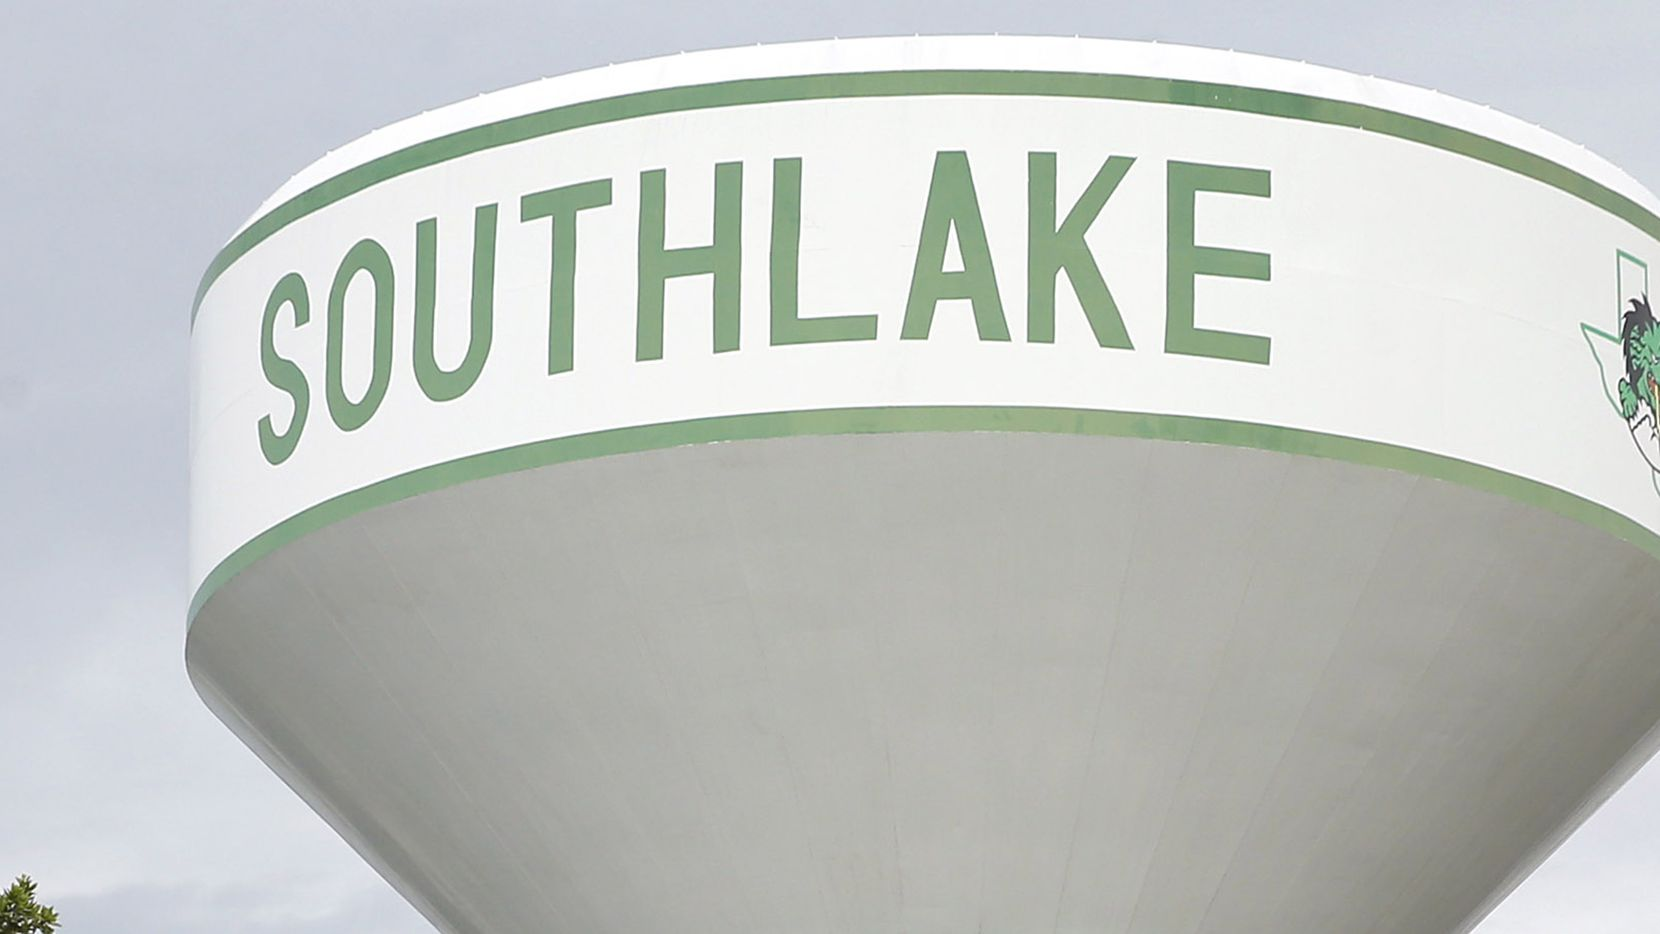 Southlake's Mobility Team offers updates on upcoming road construction projects.